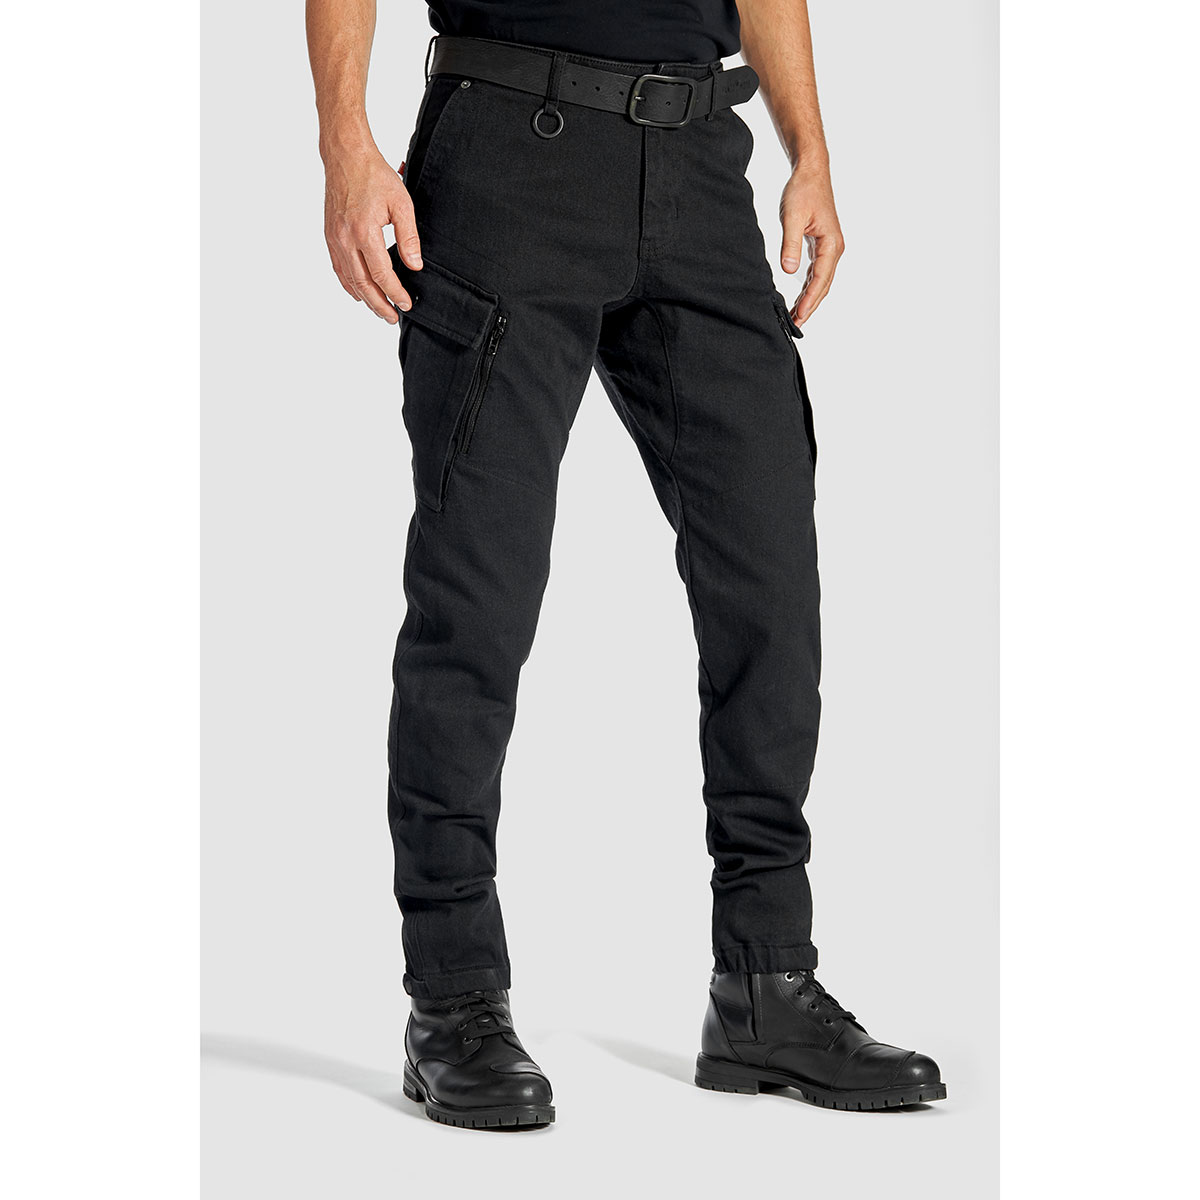 Pando Moto Mark Kev 01 Mens Cargo Pants